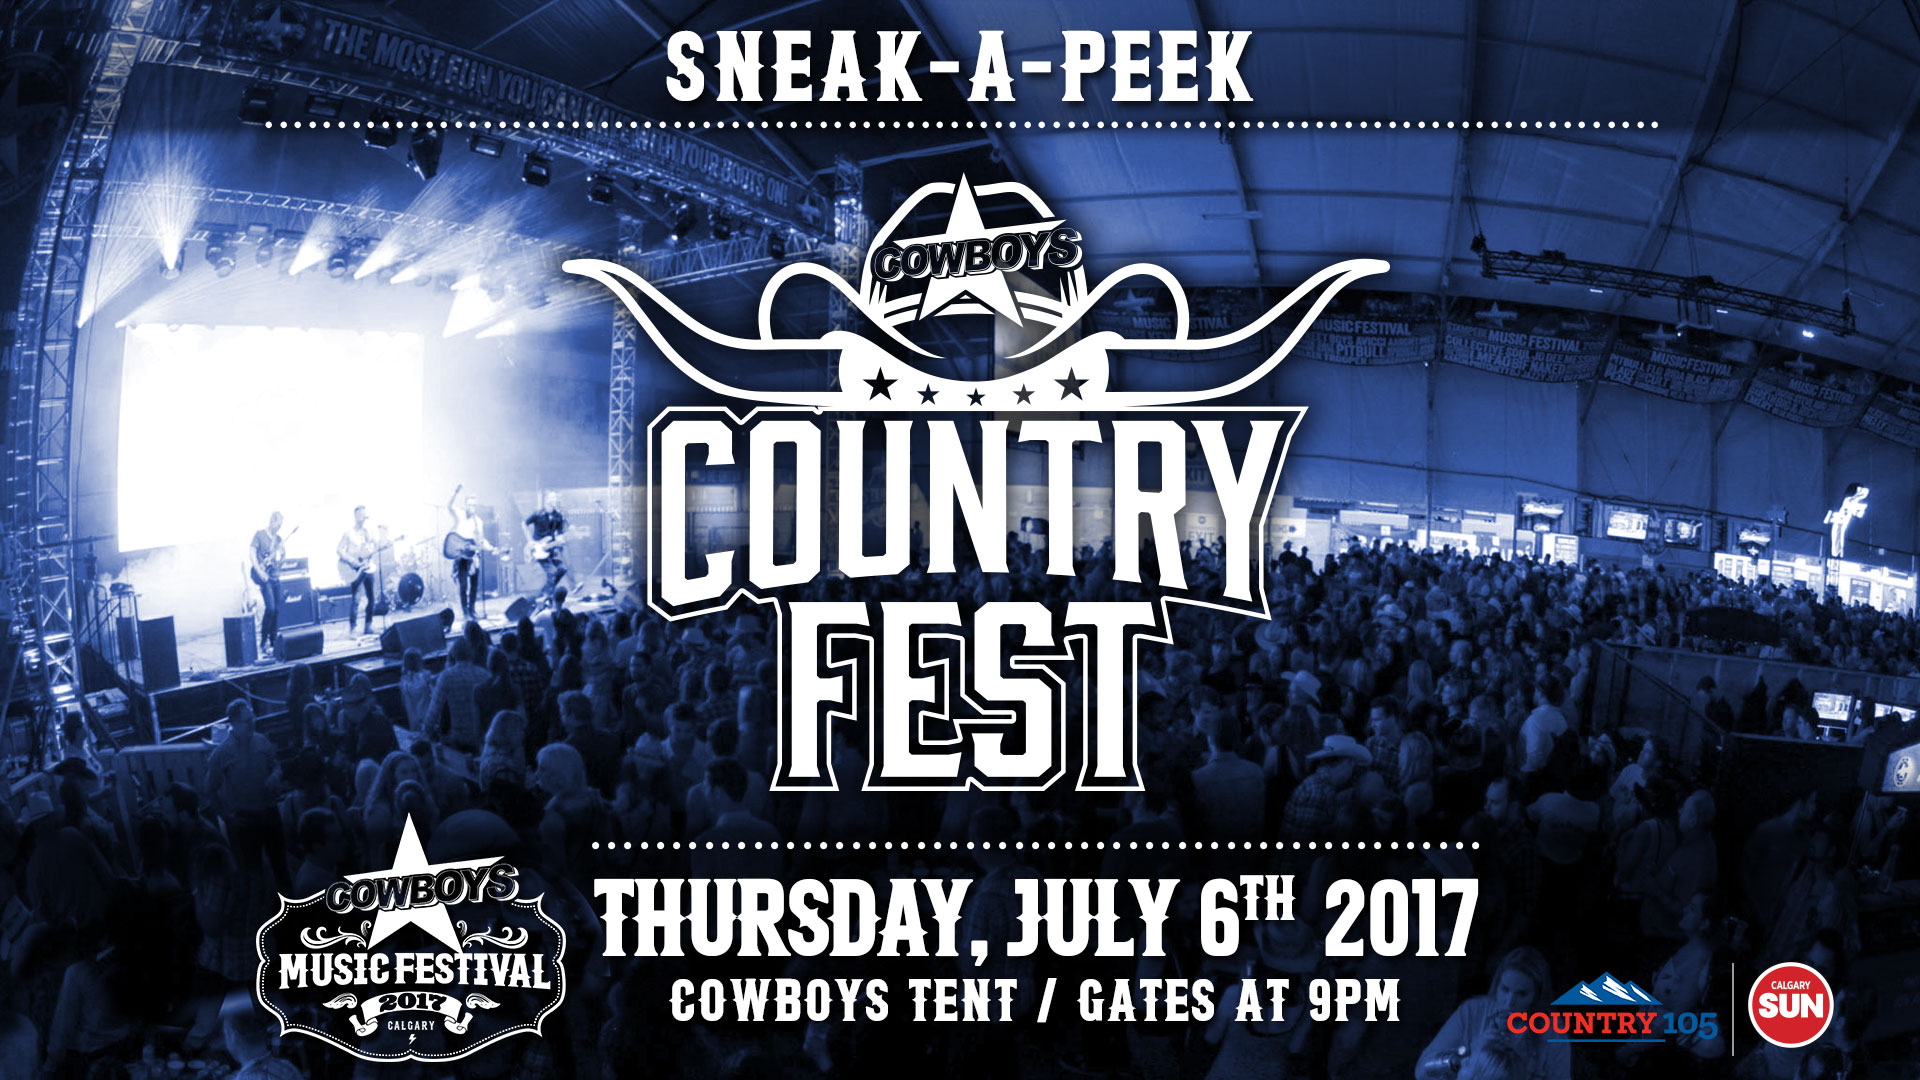 SNEAK-A-PEEK COUNTRY FEST Thursday July 6th - St&ede 2017 - Cowboys Tent - Calgary - Jul 07 2017 | Showpass & SNEAK-A-PEEK COUNTRY FEST Thursday July 6th - Stampede 2017 ...